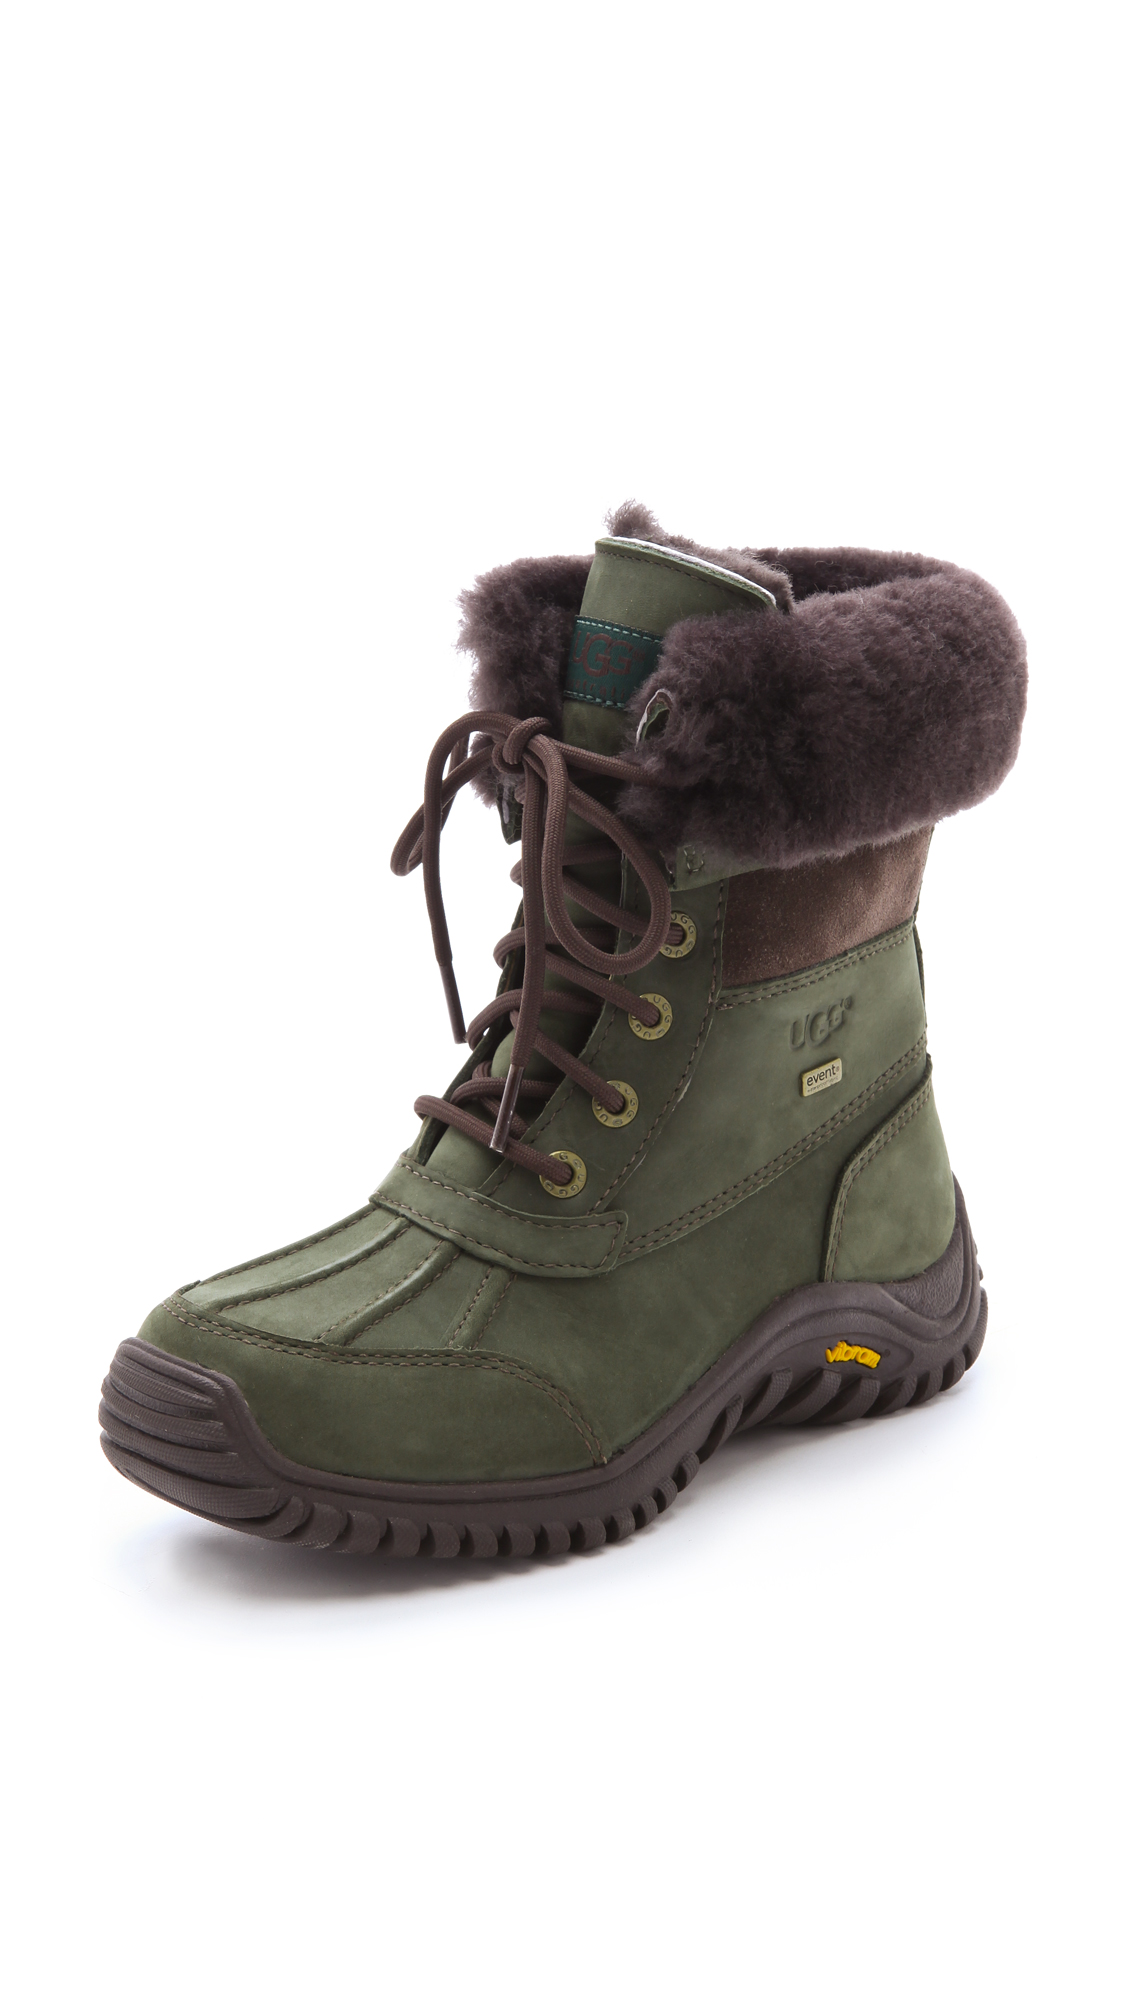 Ugg Adirondack Boots In Green Pine Lyst